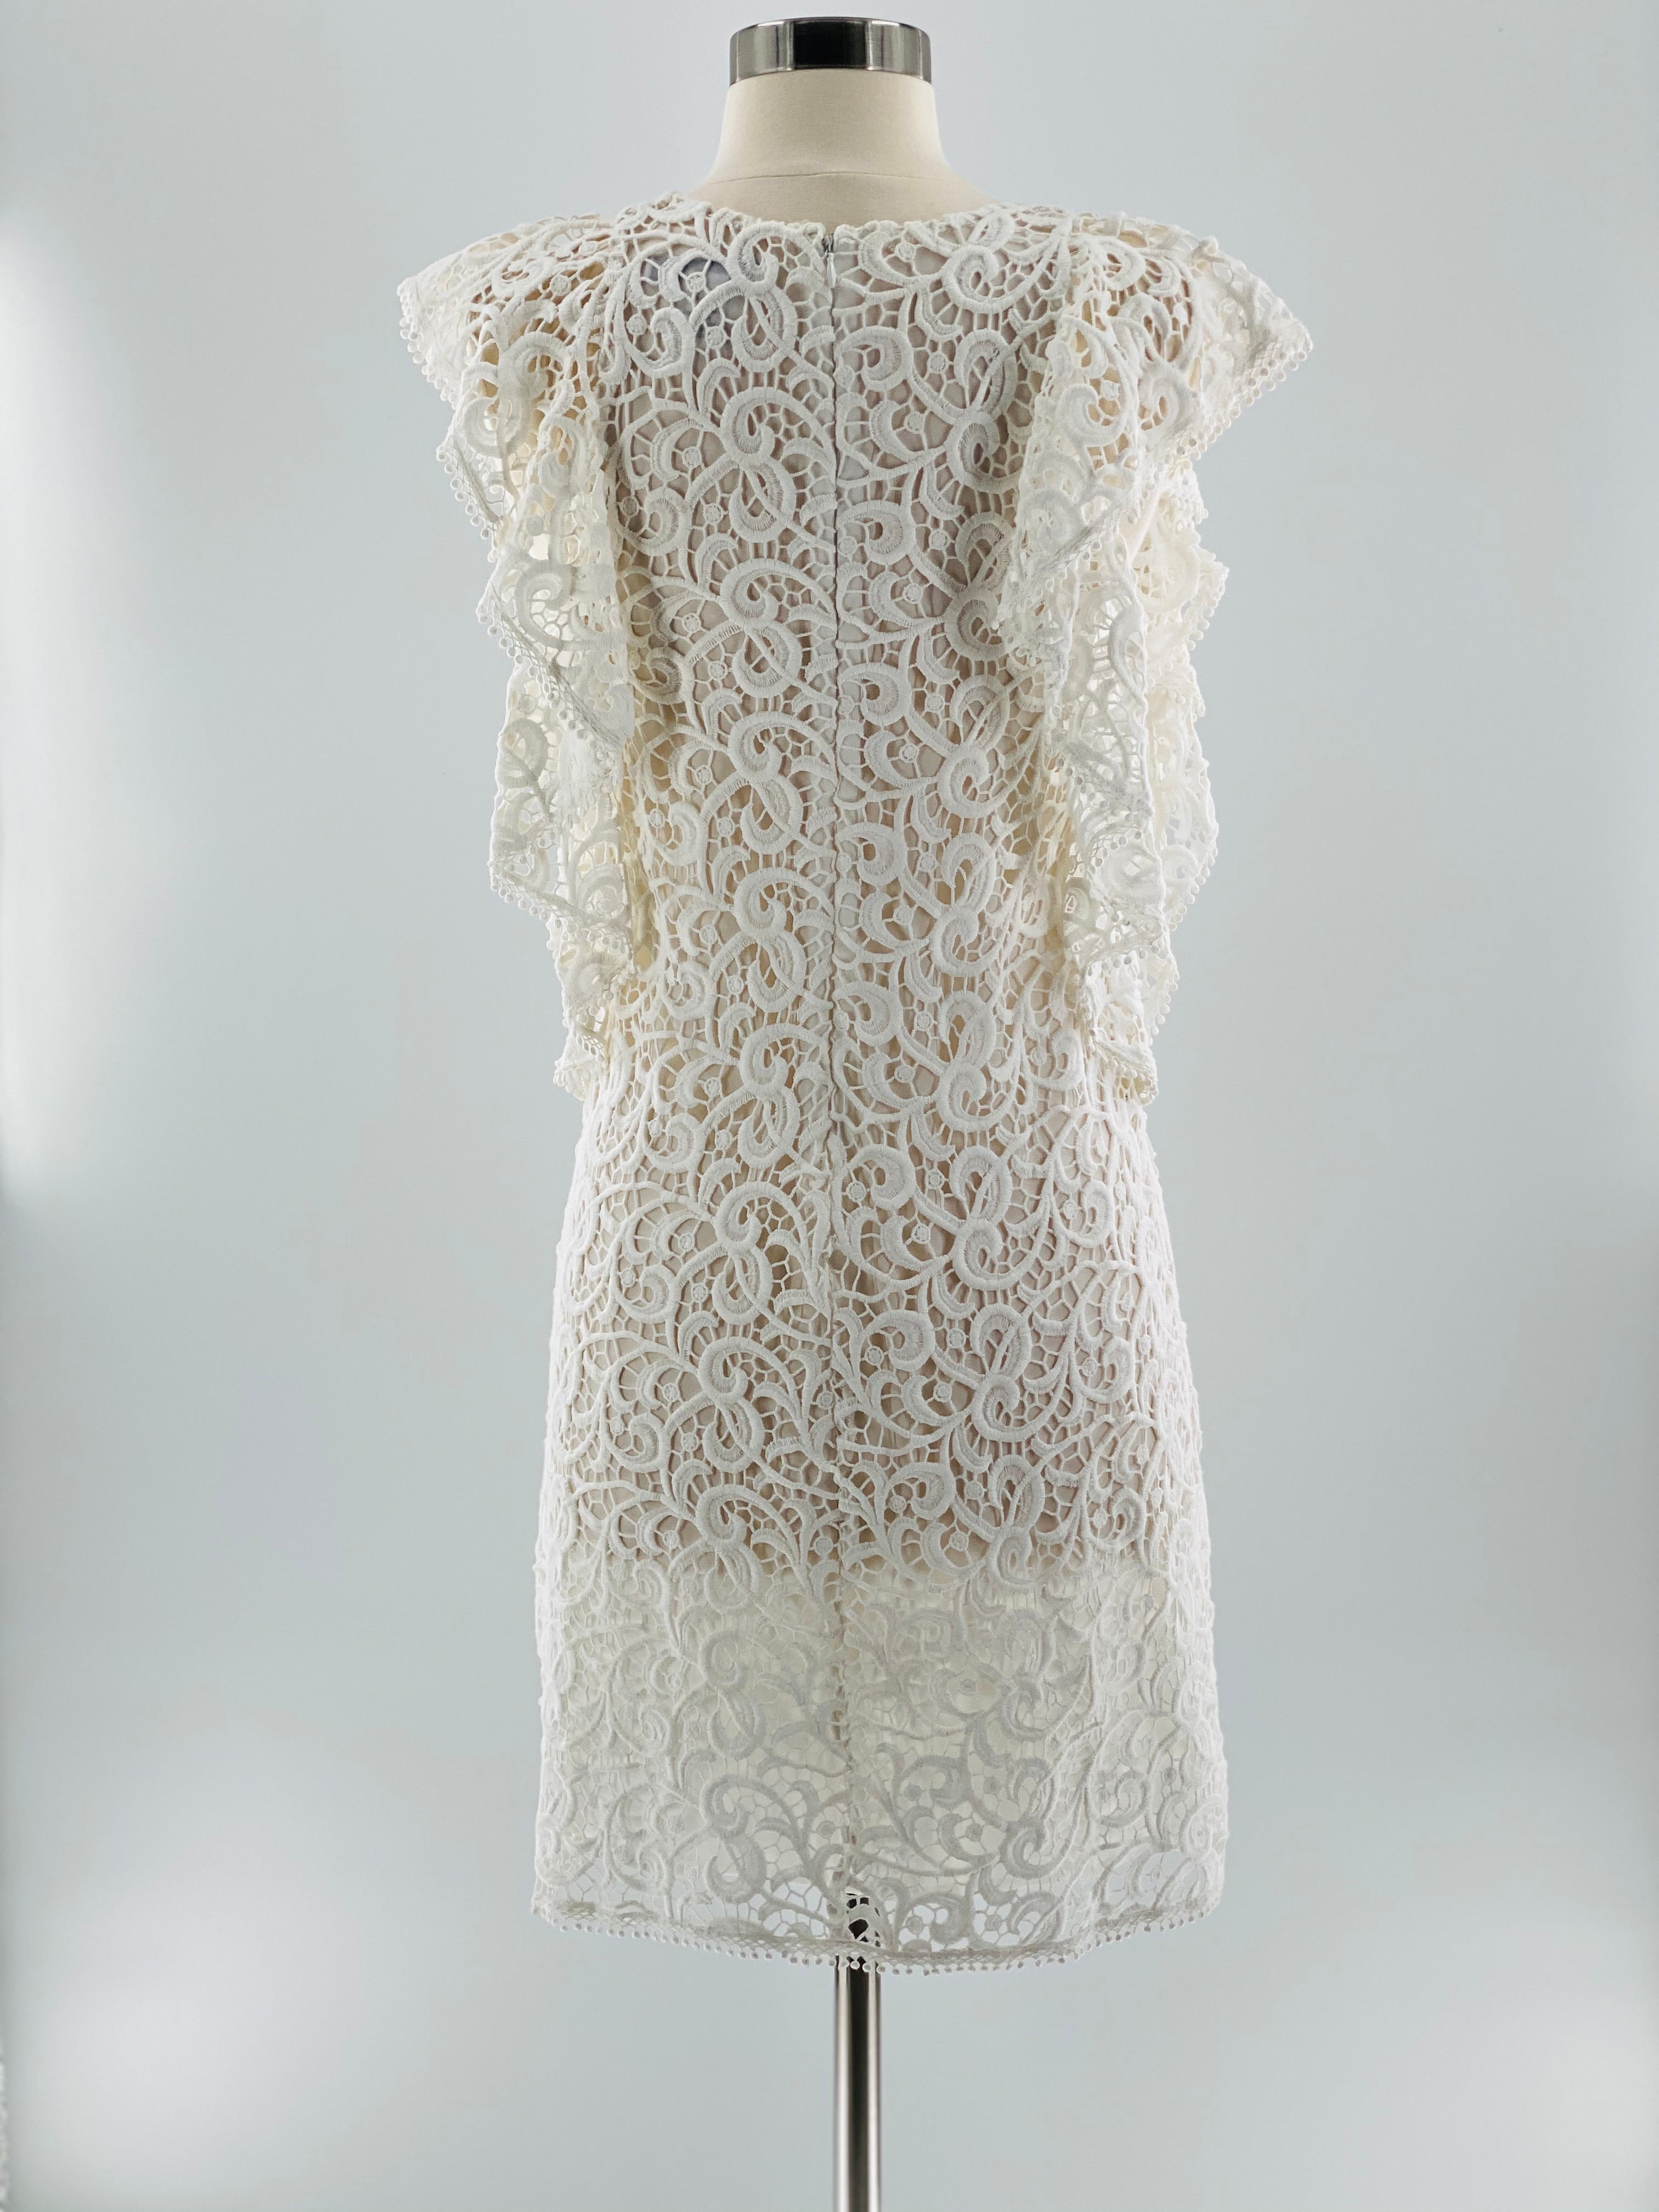 Hiche Crochet Lace Flounce Dress, Size Small